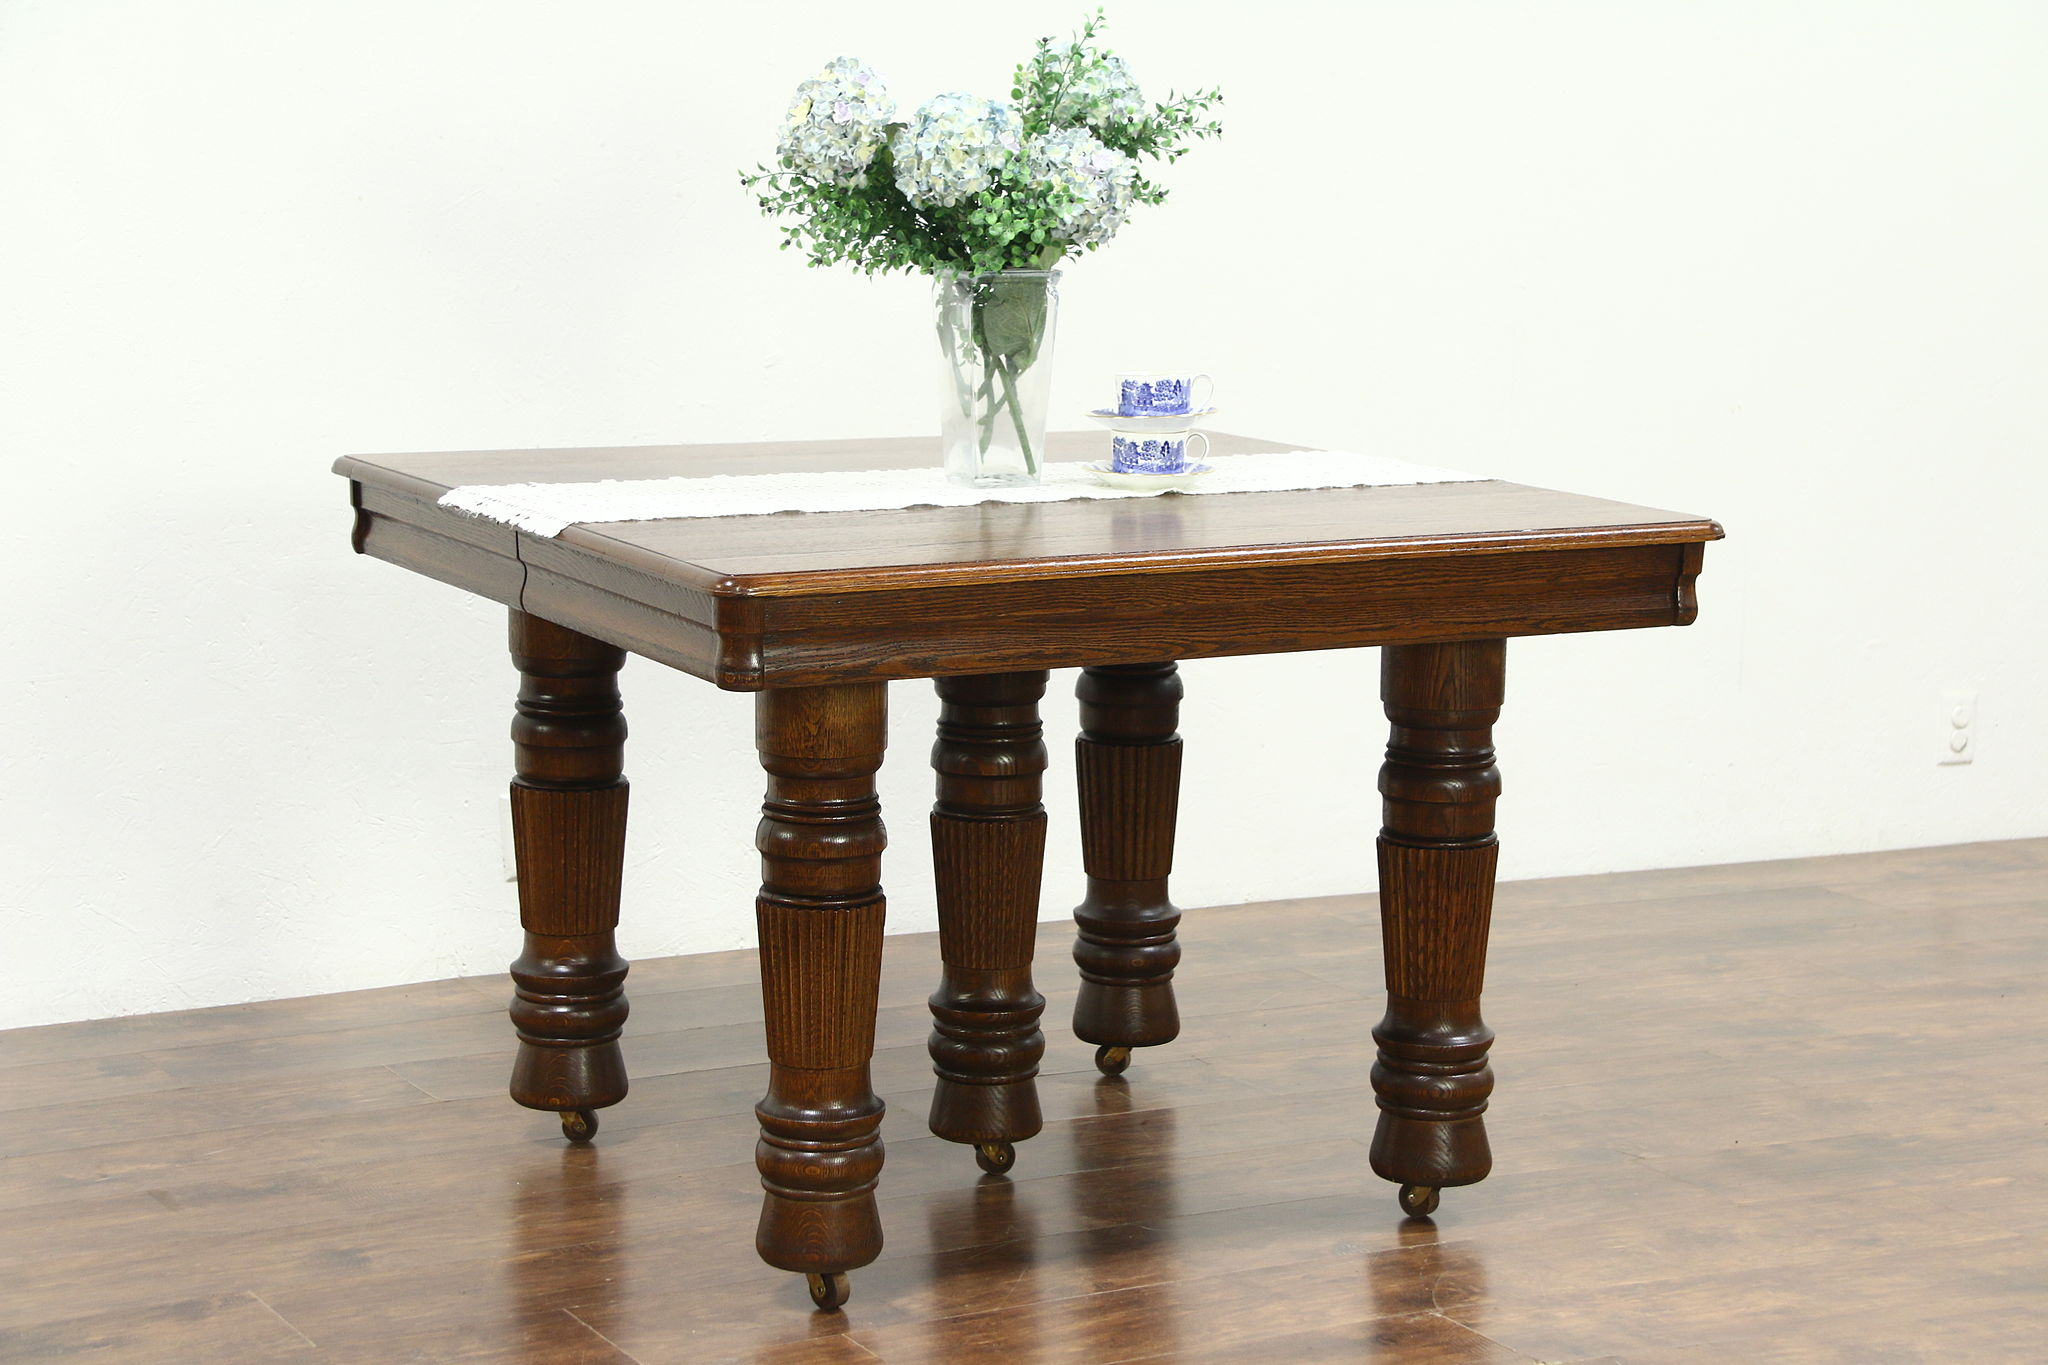 Sold solid oak square antique 5 leg dining table 6 leaves solid oak square antique 5 leg dining table 6 leaves extends 10 8 watchthetrailerfo